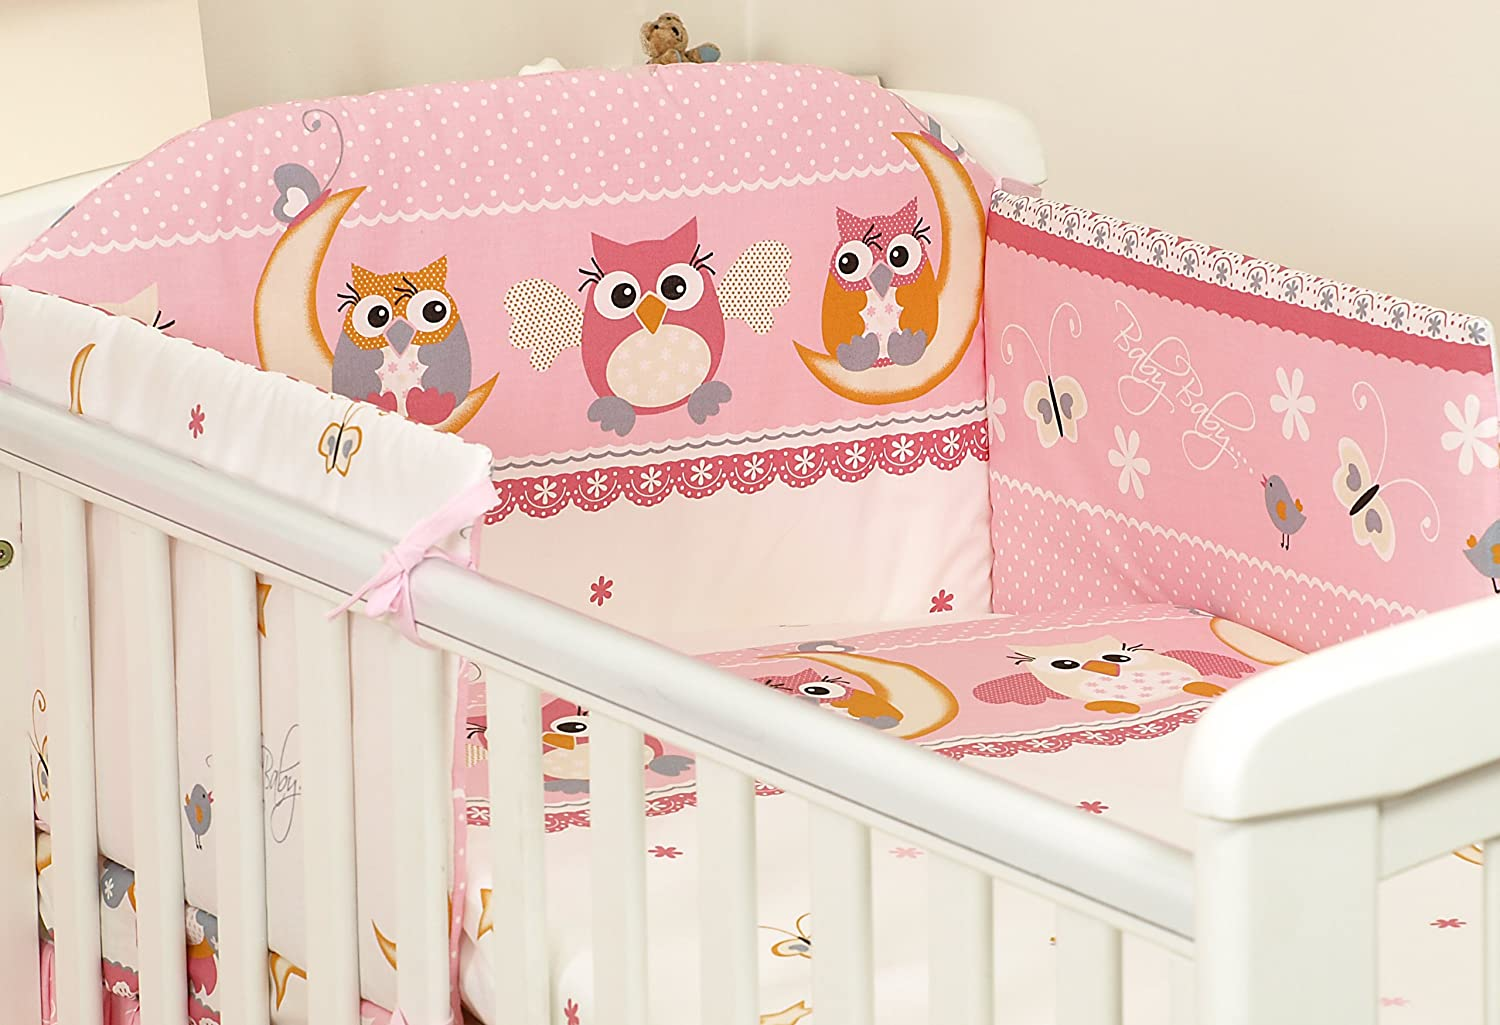 2 Piece Kids Cotton Duvet Cover Pillowcase for Baby Crib//Cot//Junior Bed Owls